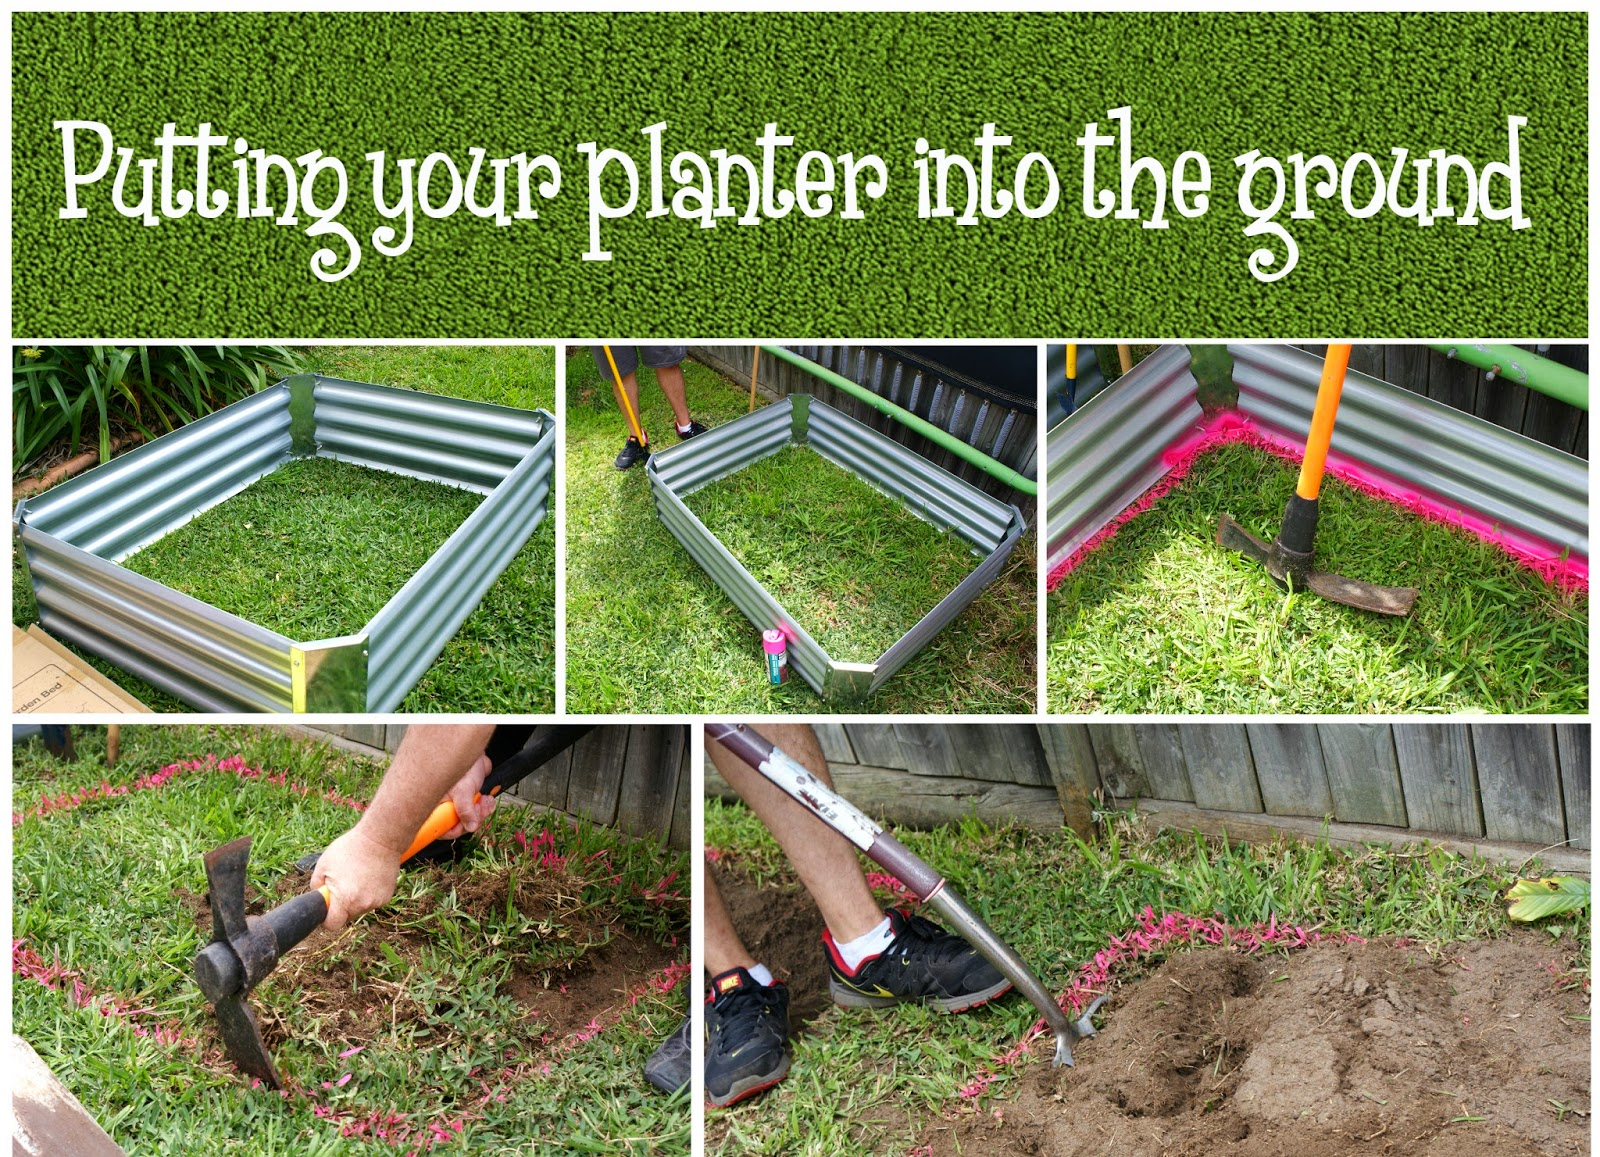 How to Install a Raised Garden Bed for a Veggie Patch